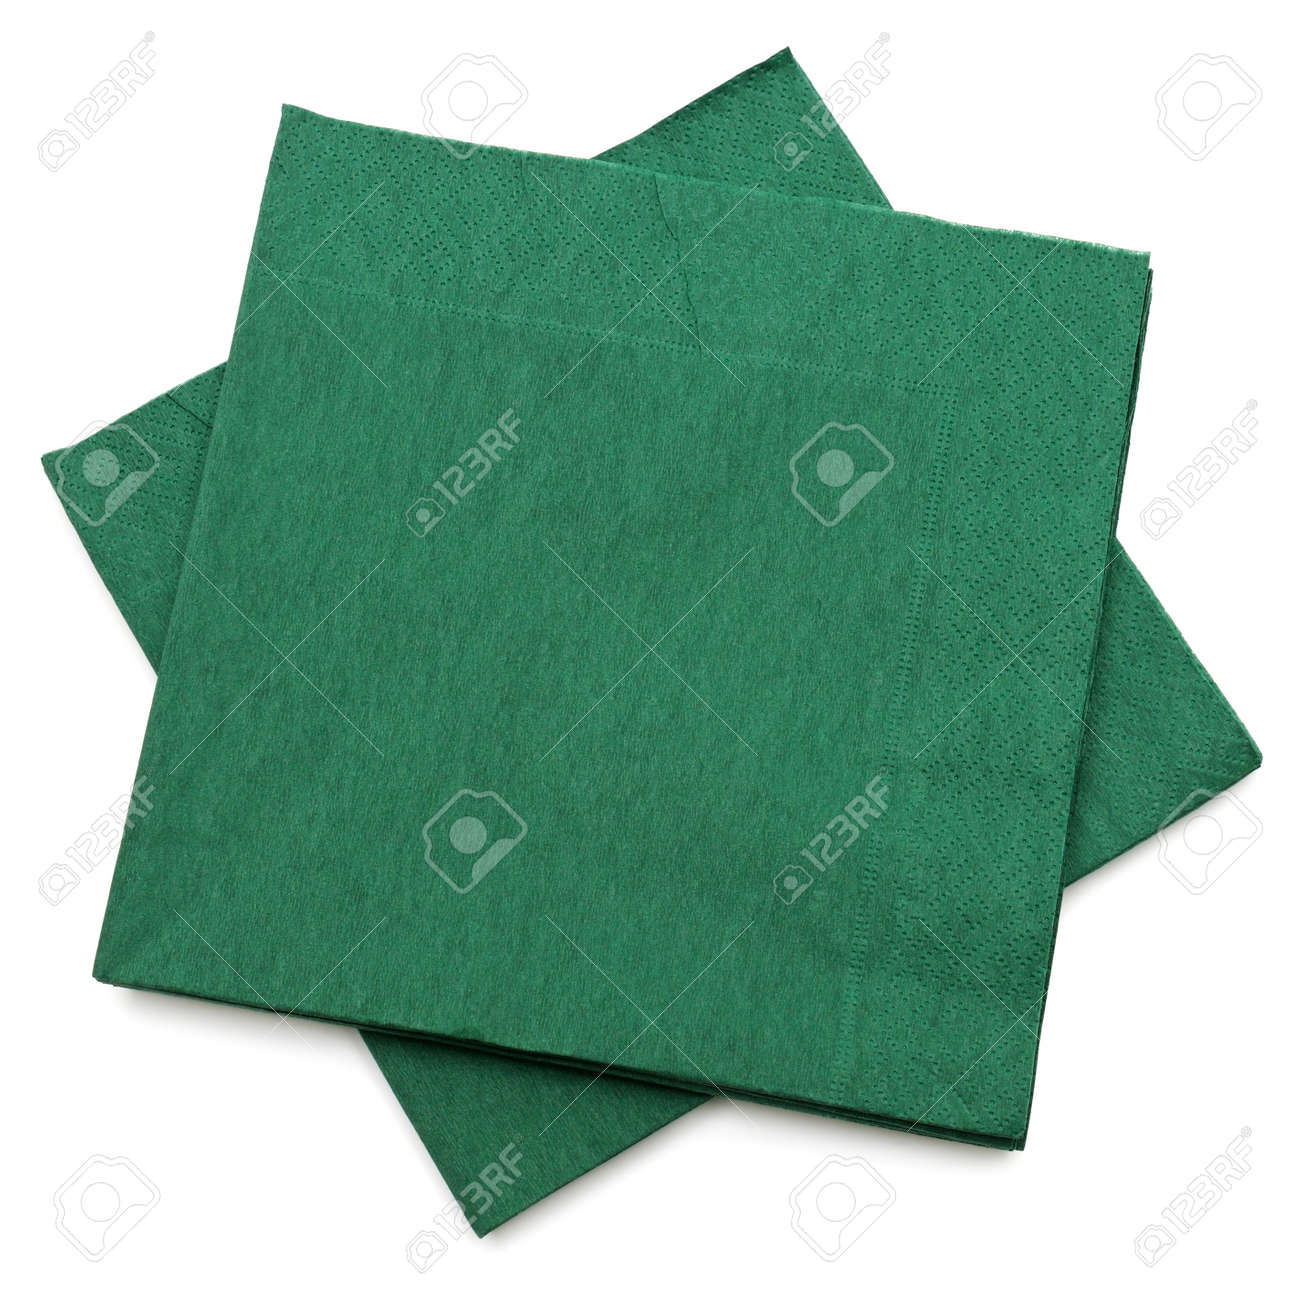 green napkins isolated on a white background - 13610543